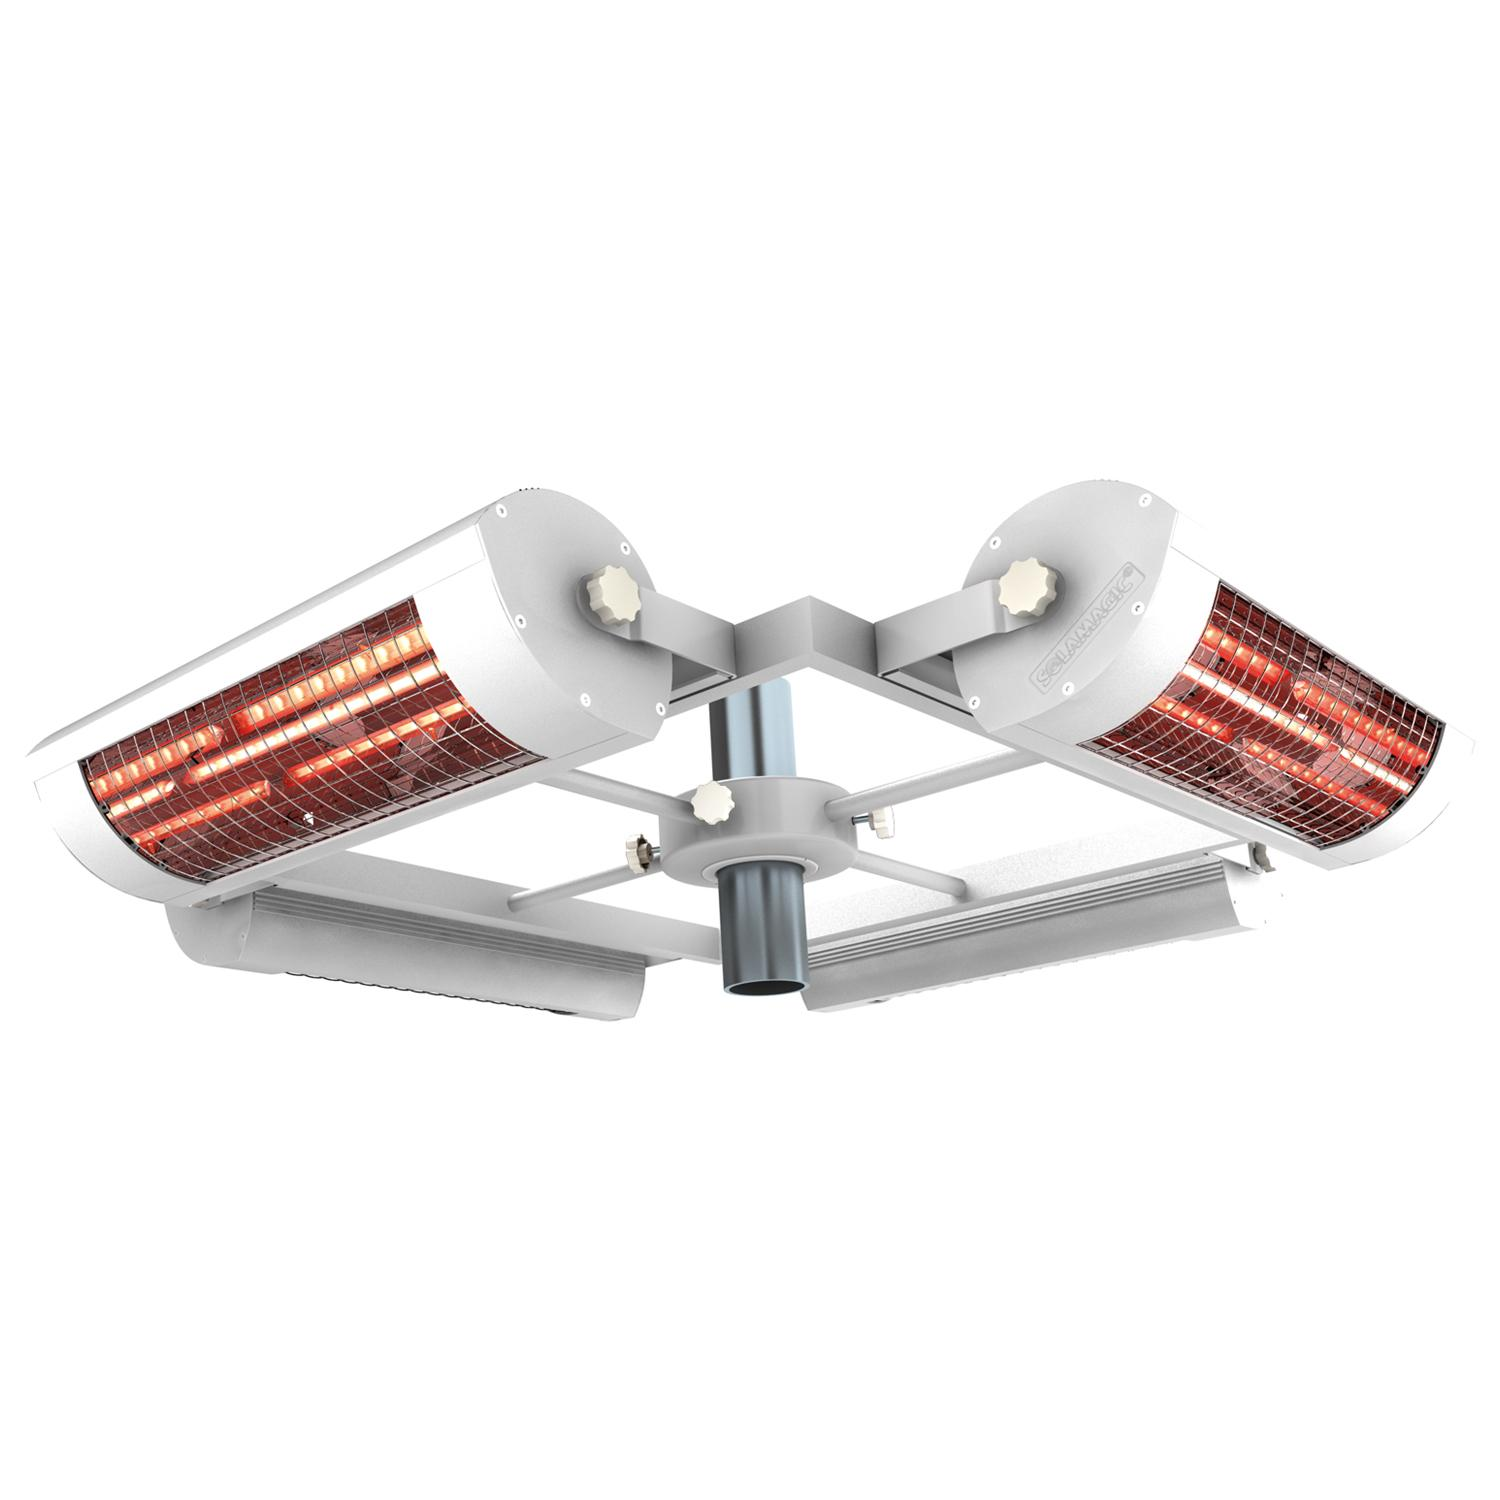 Solamagic Parasol Patio Heater